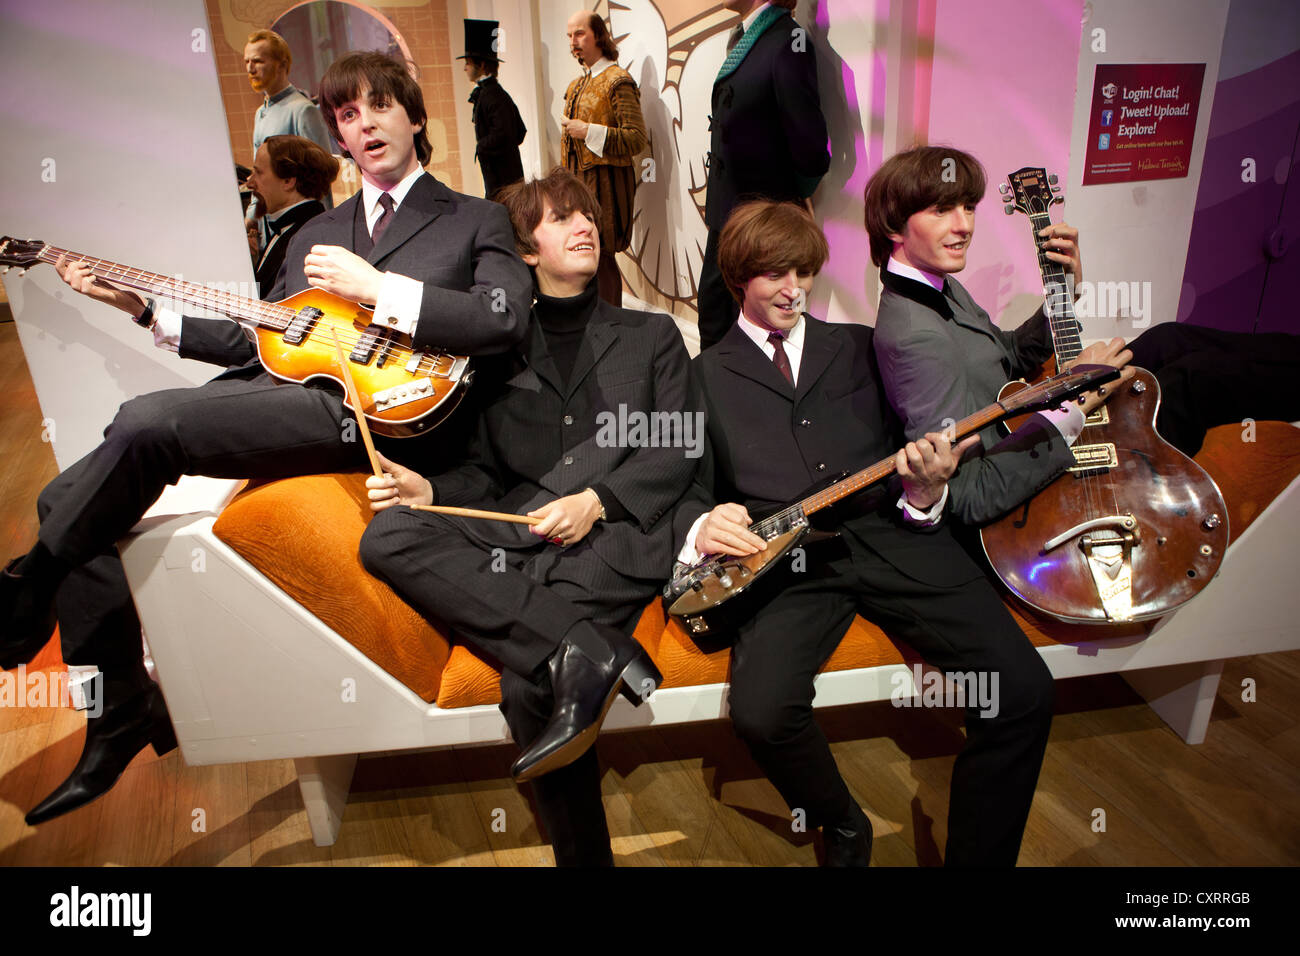 The Beatles wax work models at Madame Tussauds, London - Stock Image